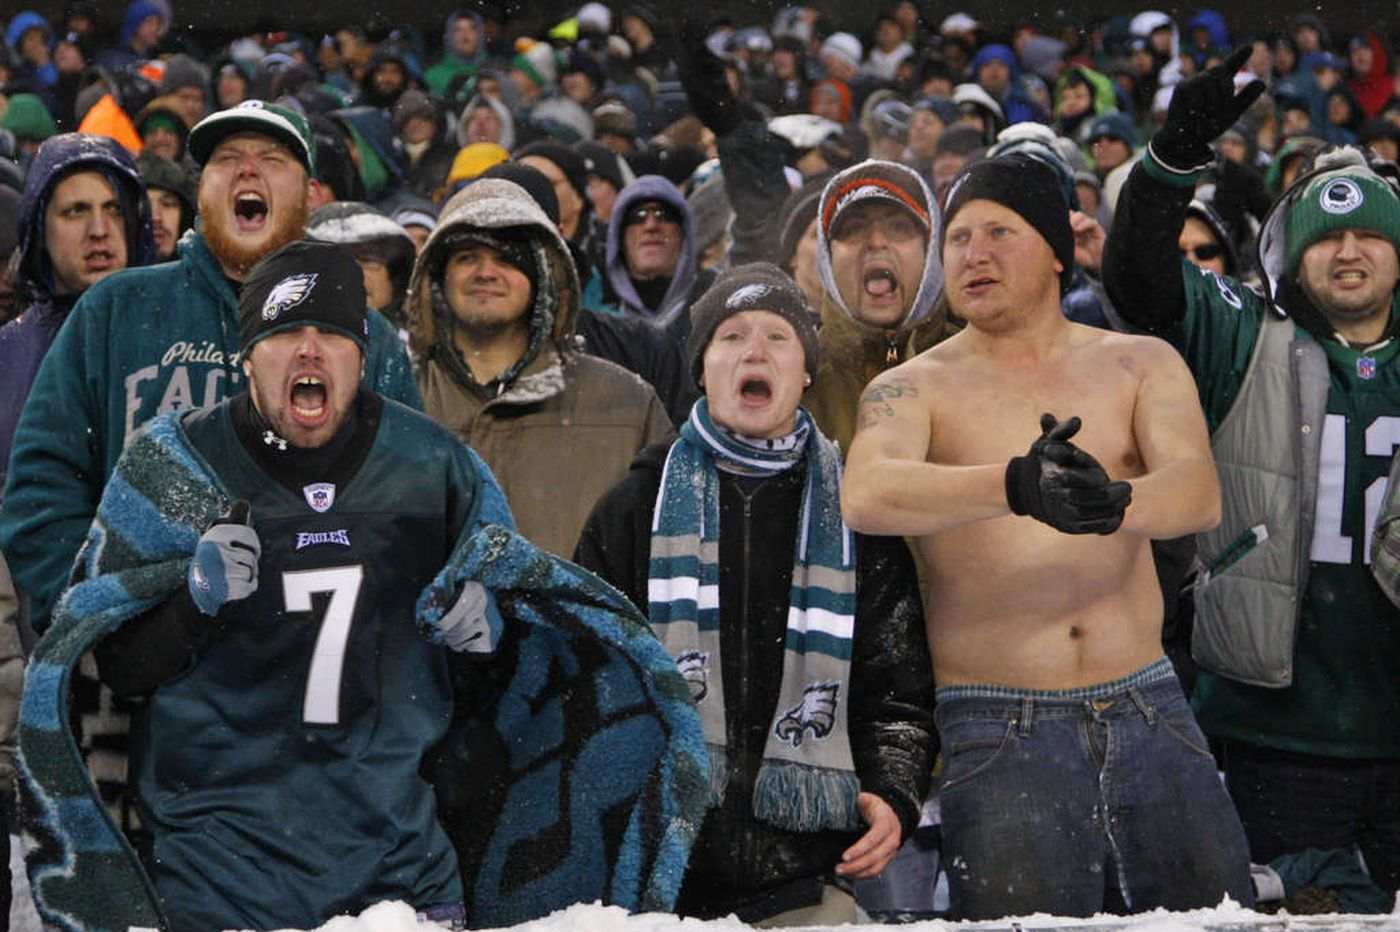 Weather was frightful, but Eagles' win delightful